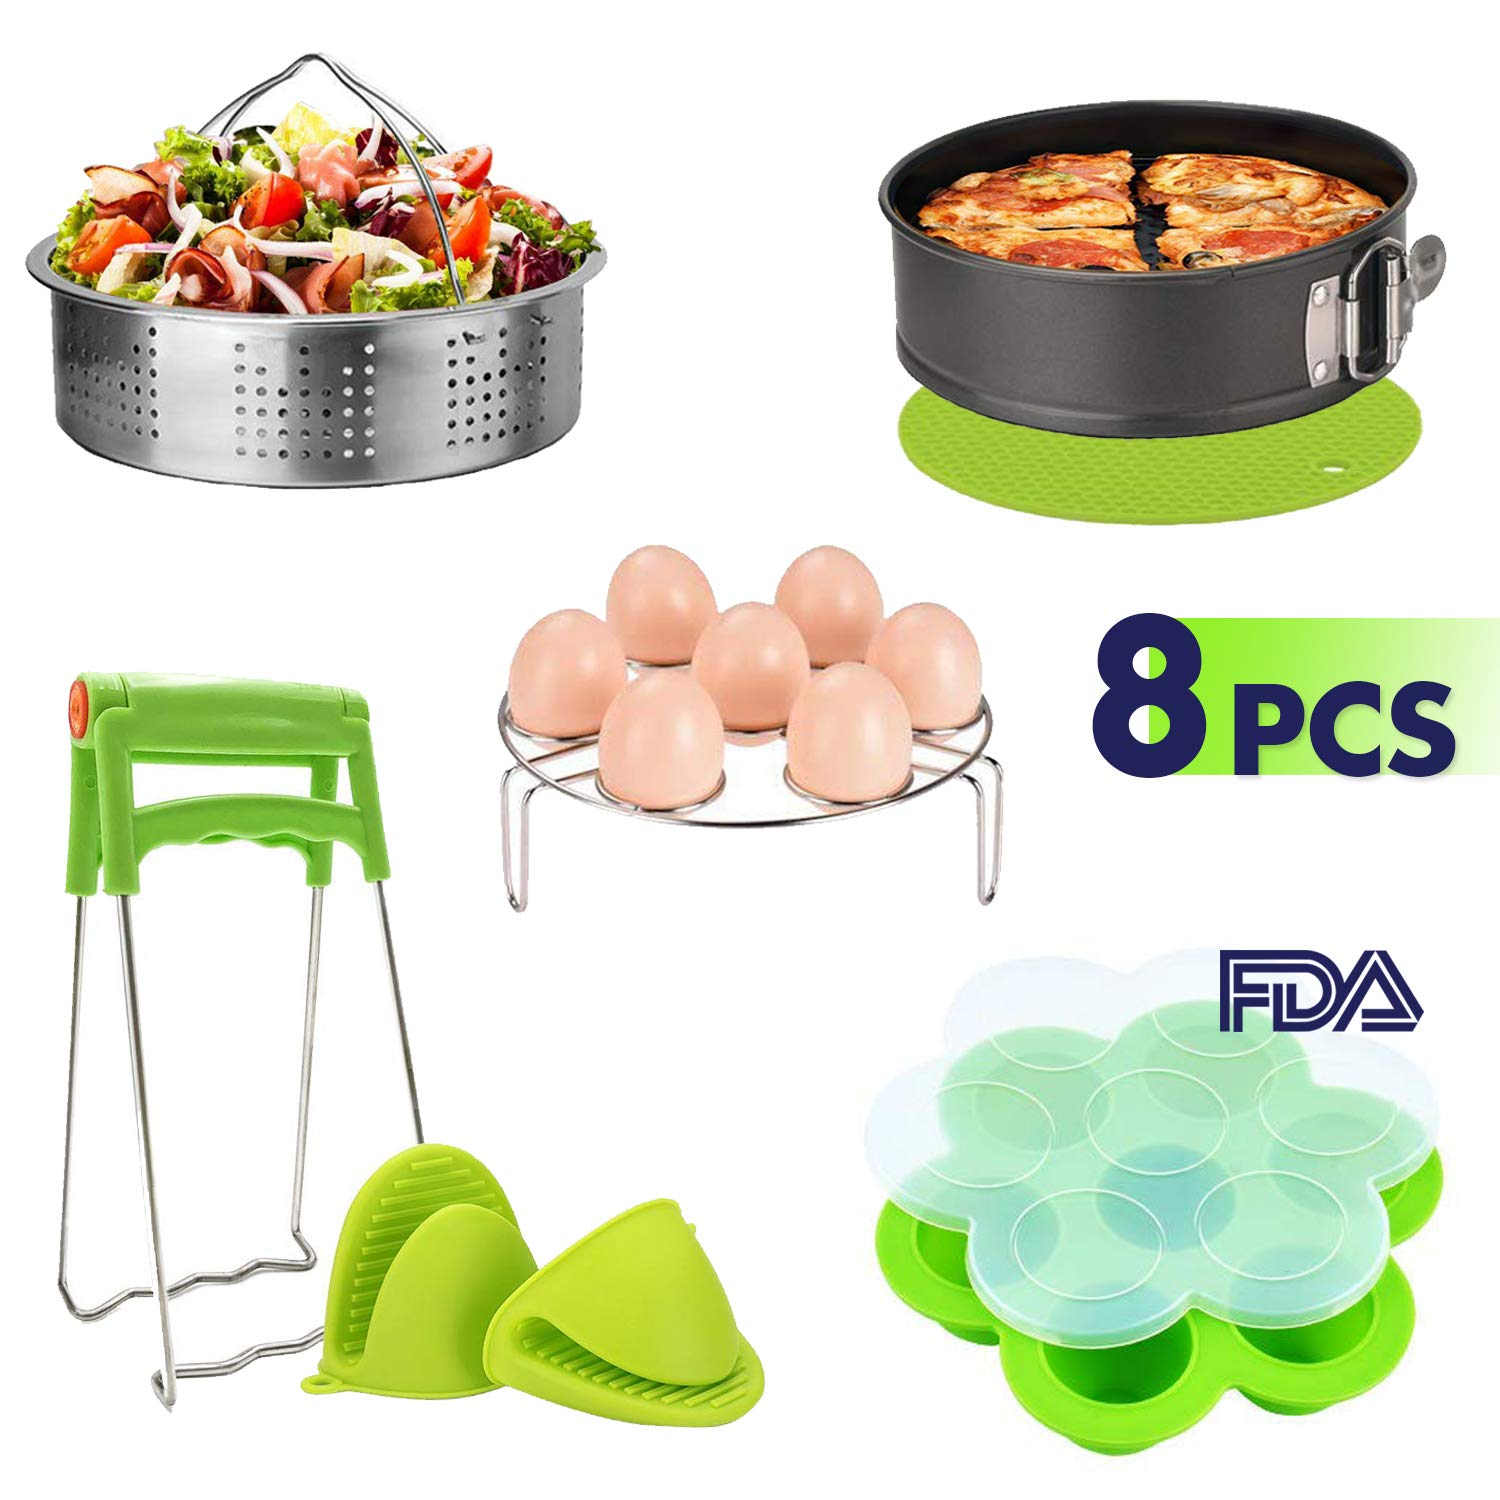 Instant Pot Accessories Set(8pcs) - Steamer Basket, Egg Steamer Rack, Egg Bites Molds, Non-stick Springform Pan, Silicone Mitt, Dish Clamp, Silicone Potholder Mat 2 x Silicone Mitt Fits 5,6,8Qt